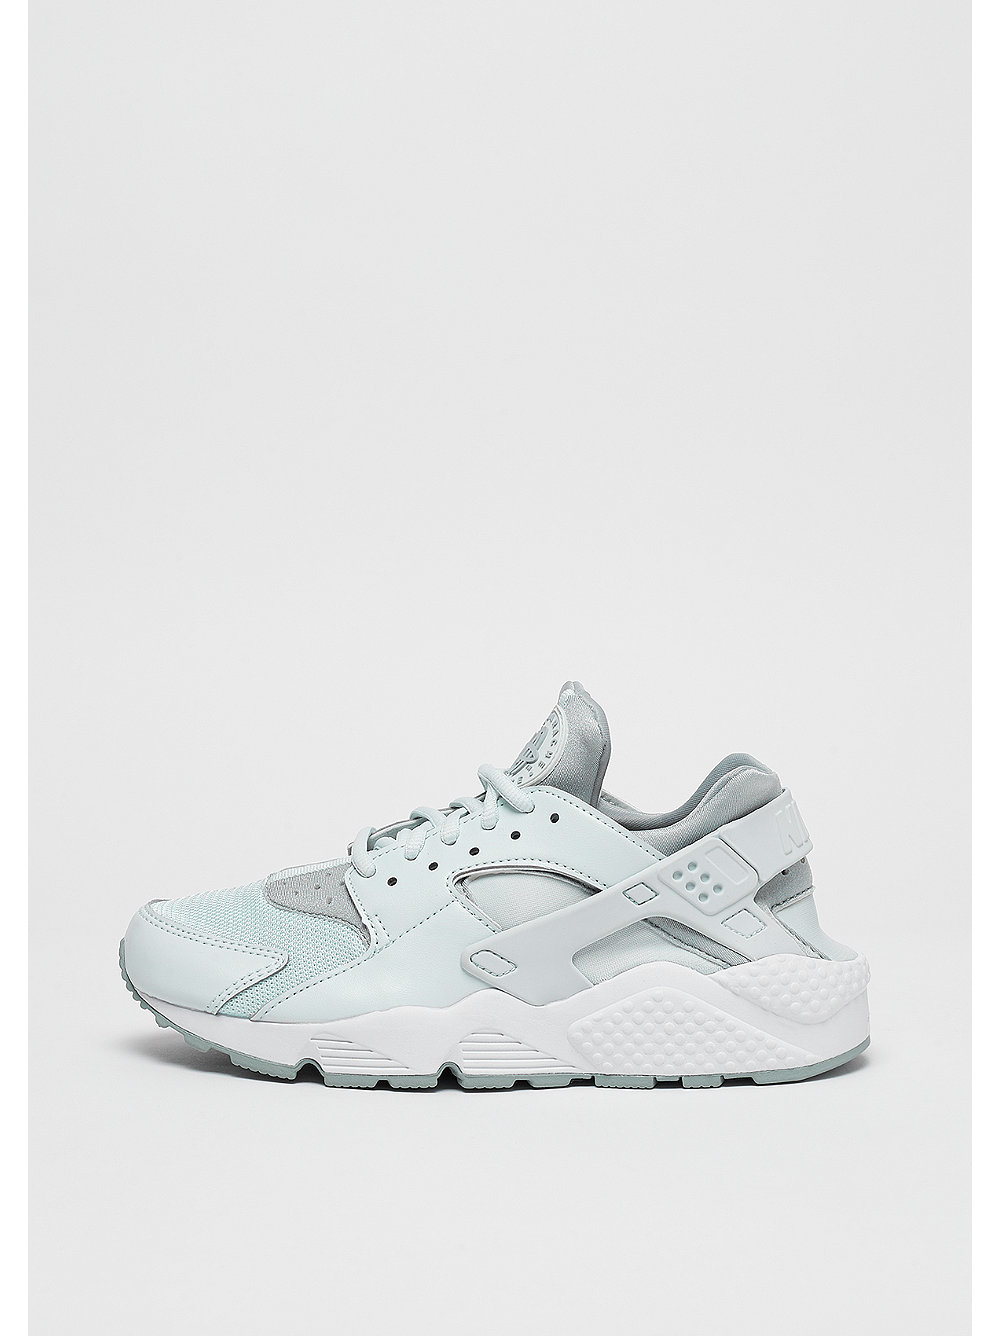 749503b8090 ... spain nike wmns air huarache run barely grey light pumice white 14cd2  e7d5d